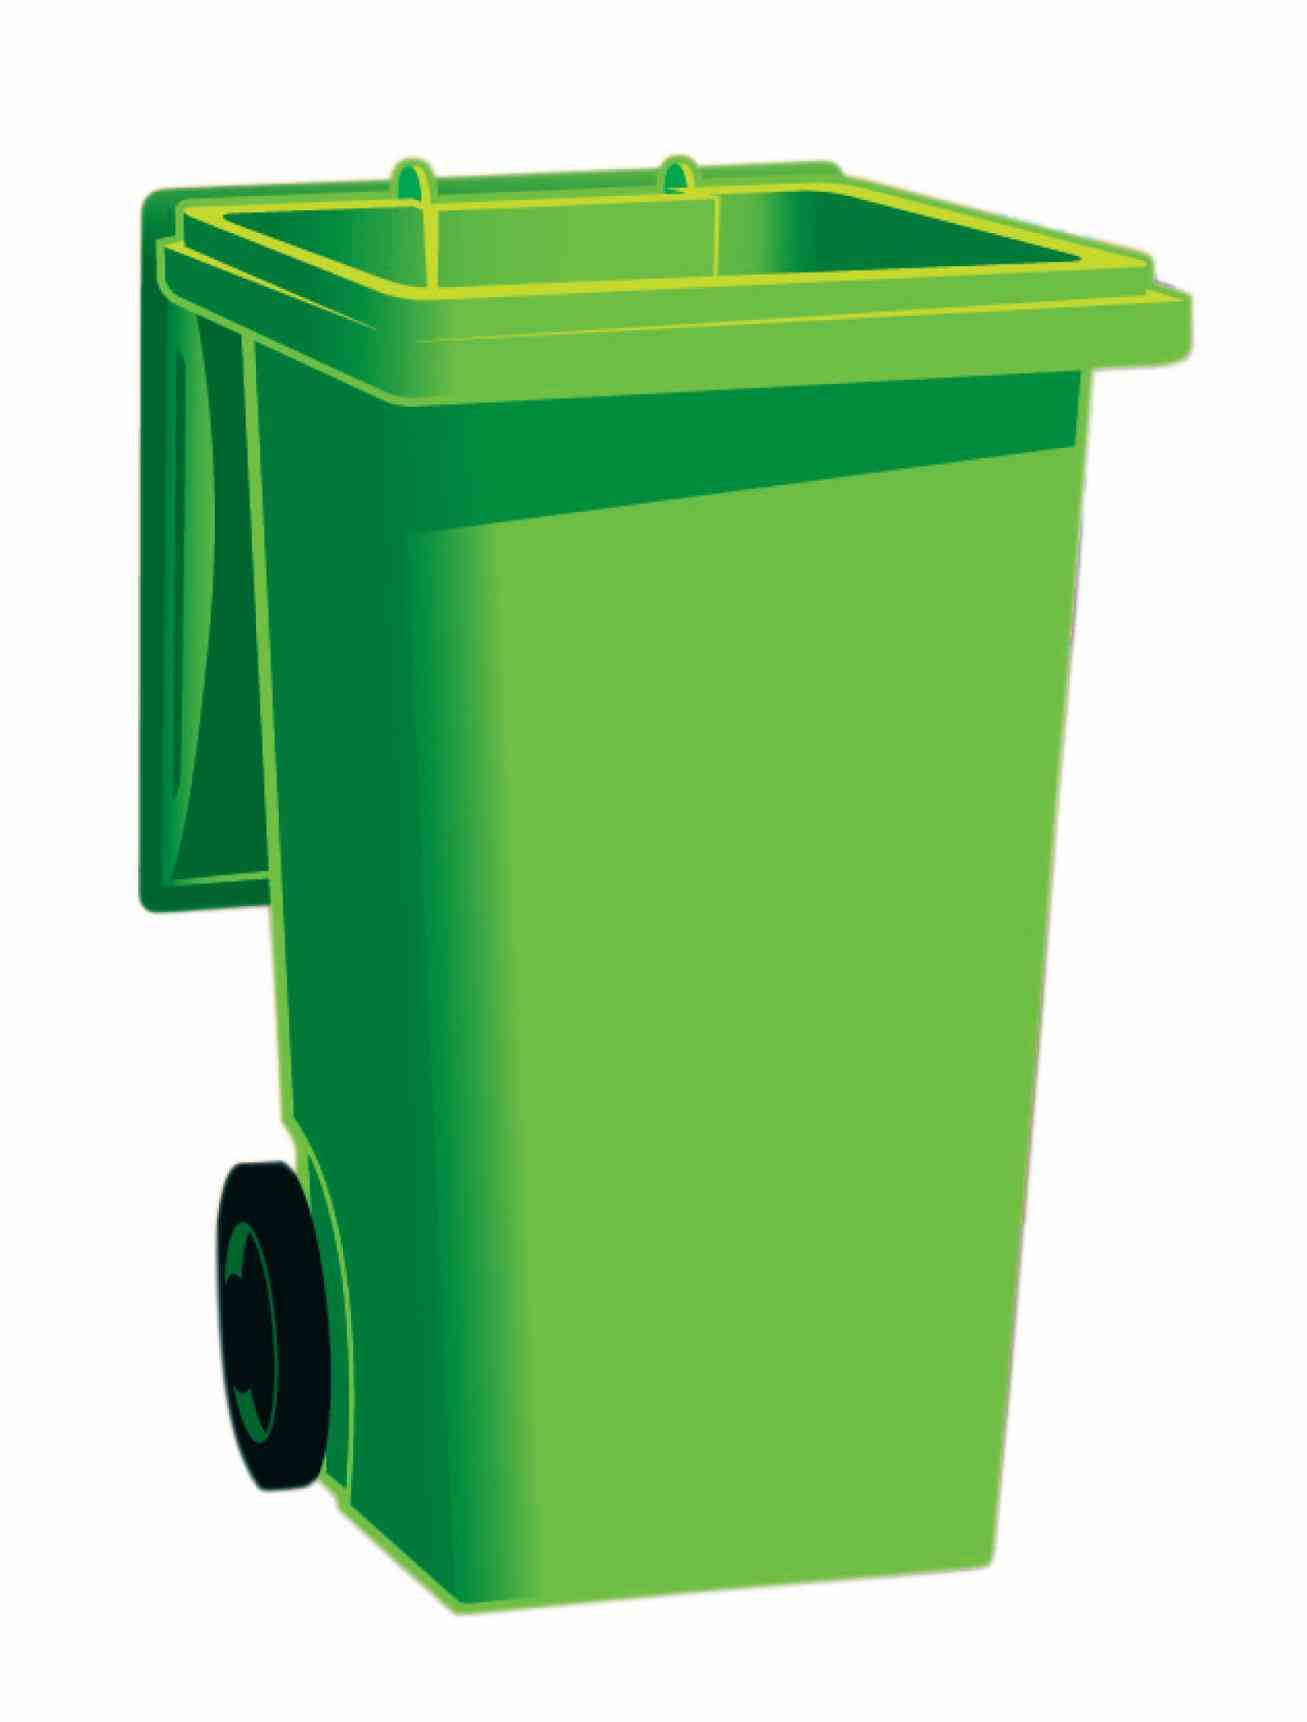 Trash Can Picture Free Download Best Trash Can Picture